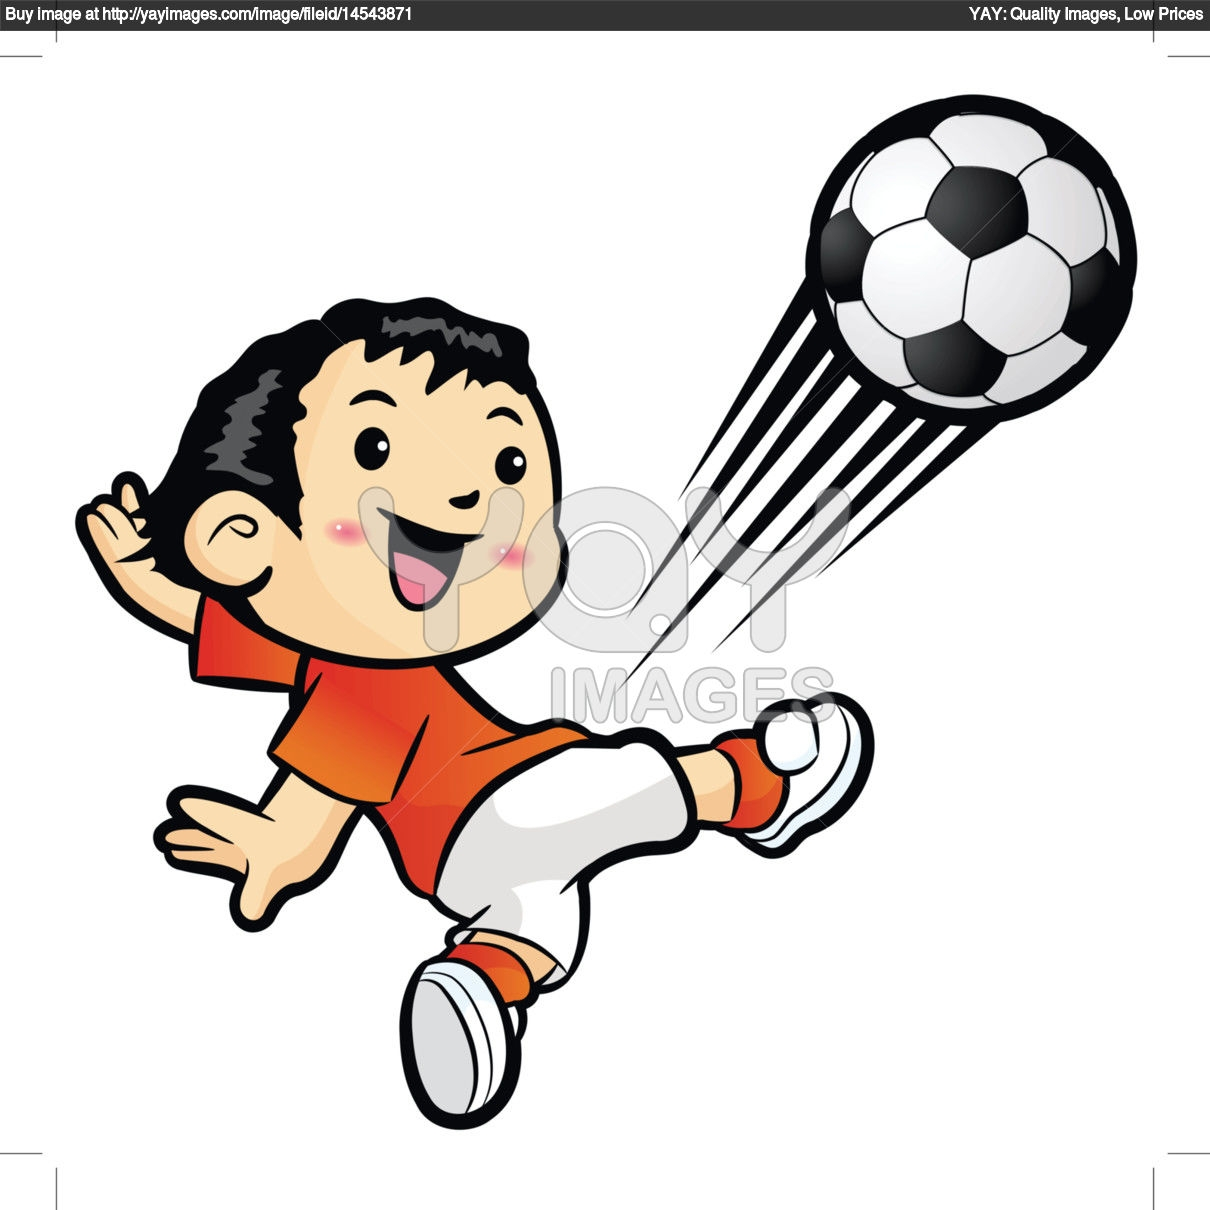 Kicking Foot Clipart.